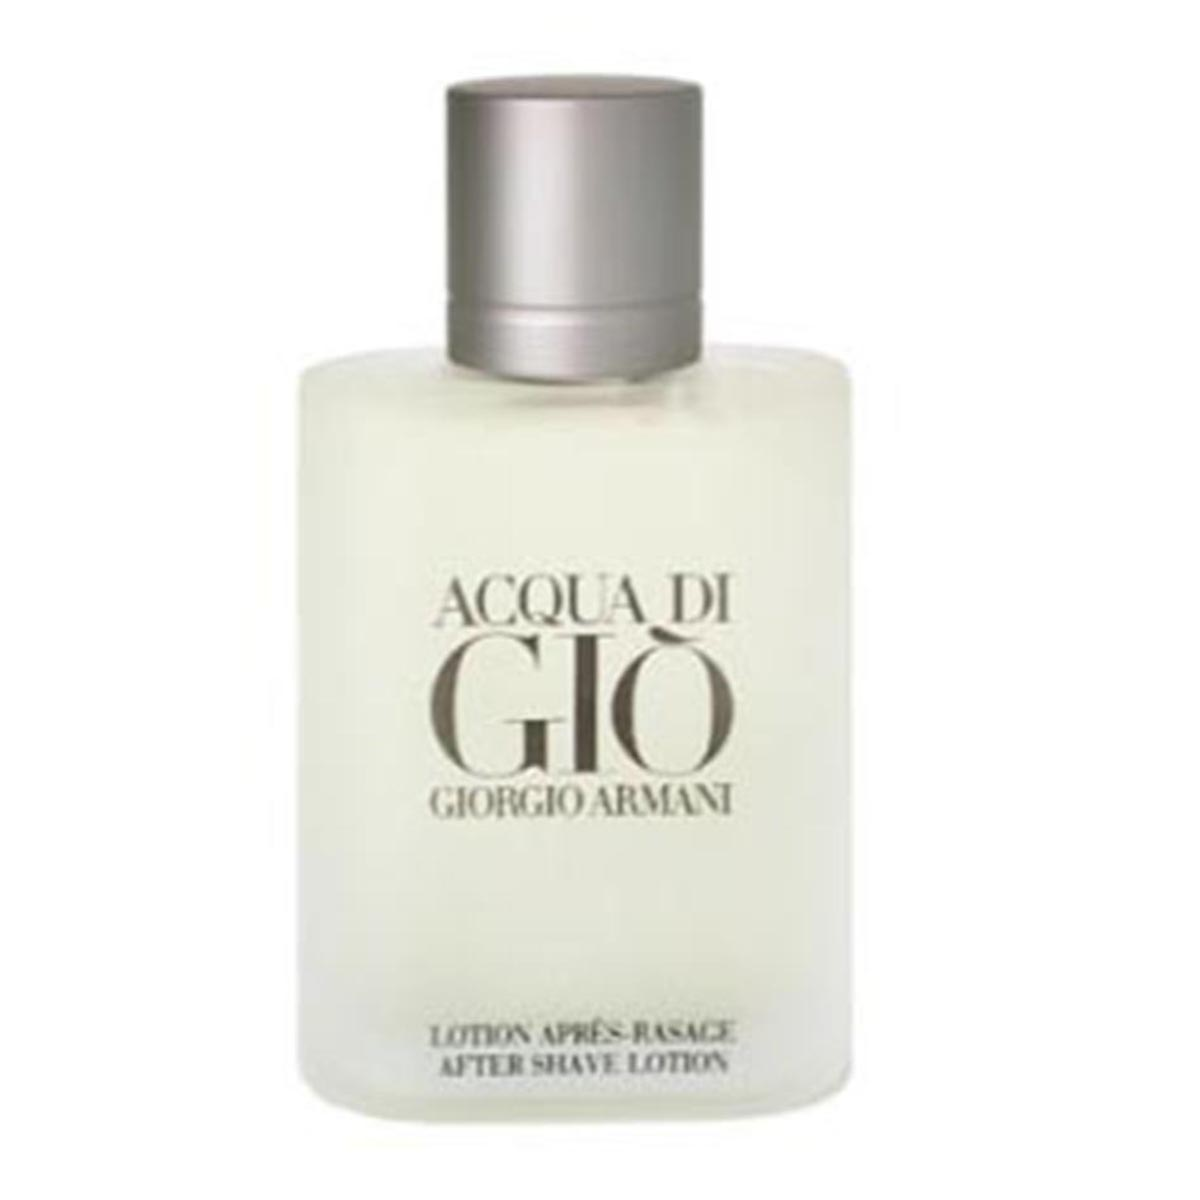 Giorgio armani acqua gio men after shave 100ml